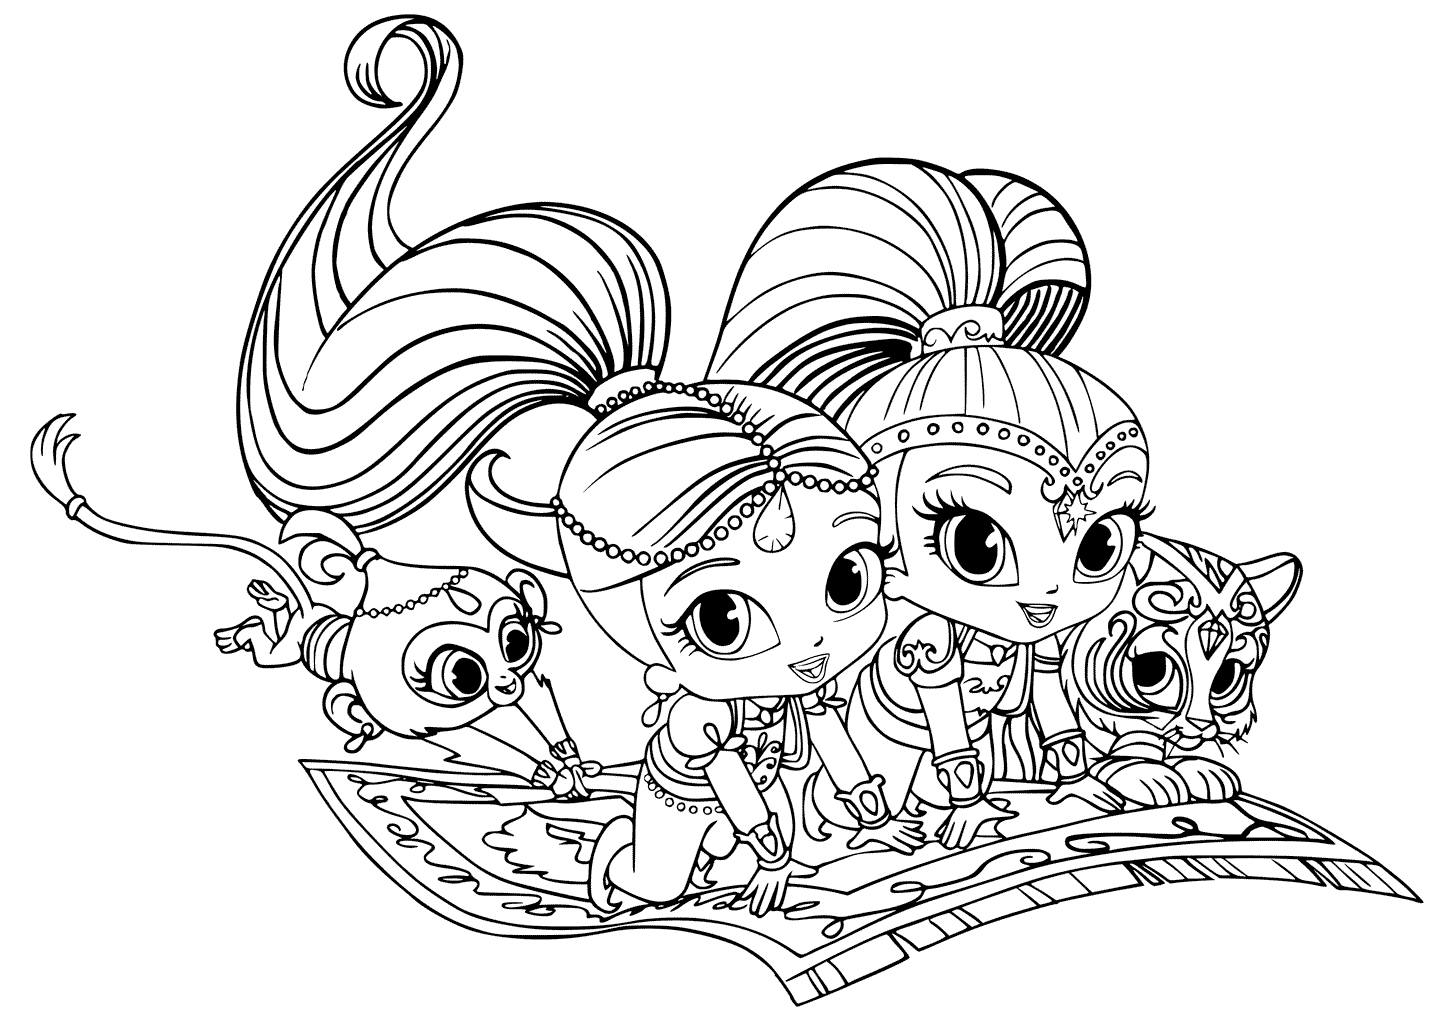 The Team On The Magic Carpet Coloring Page